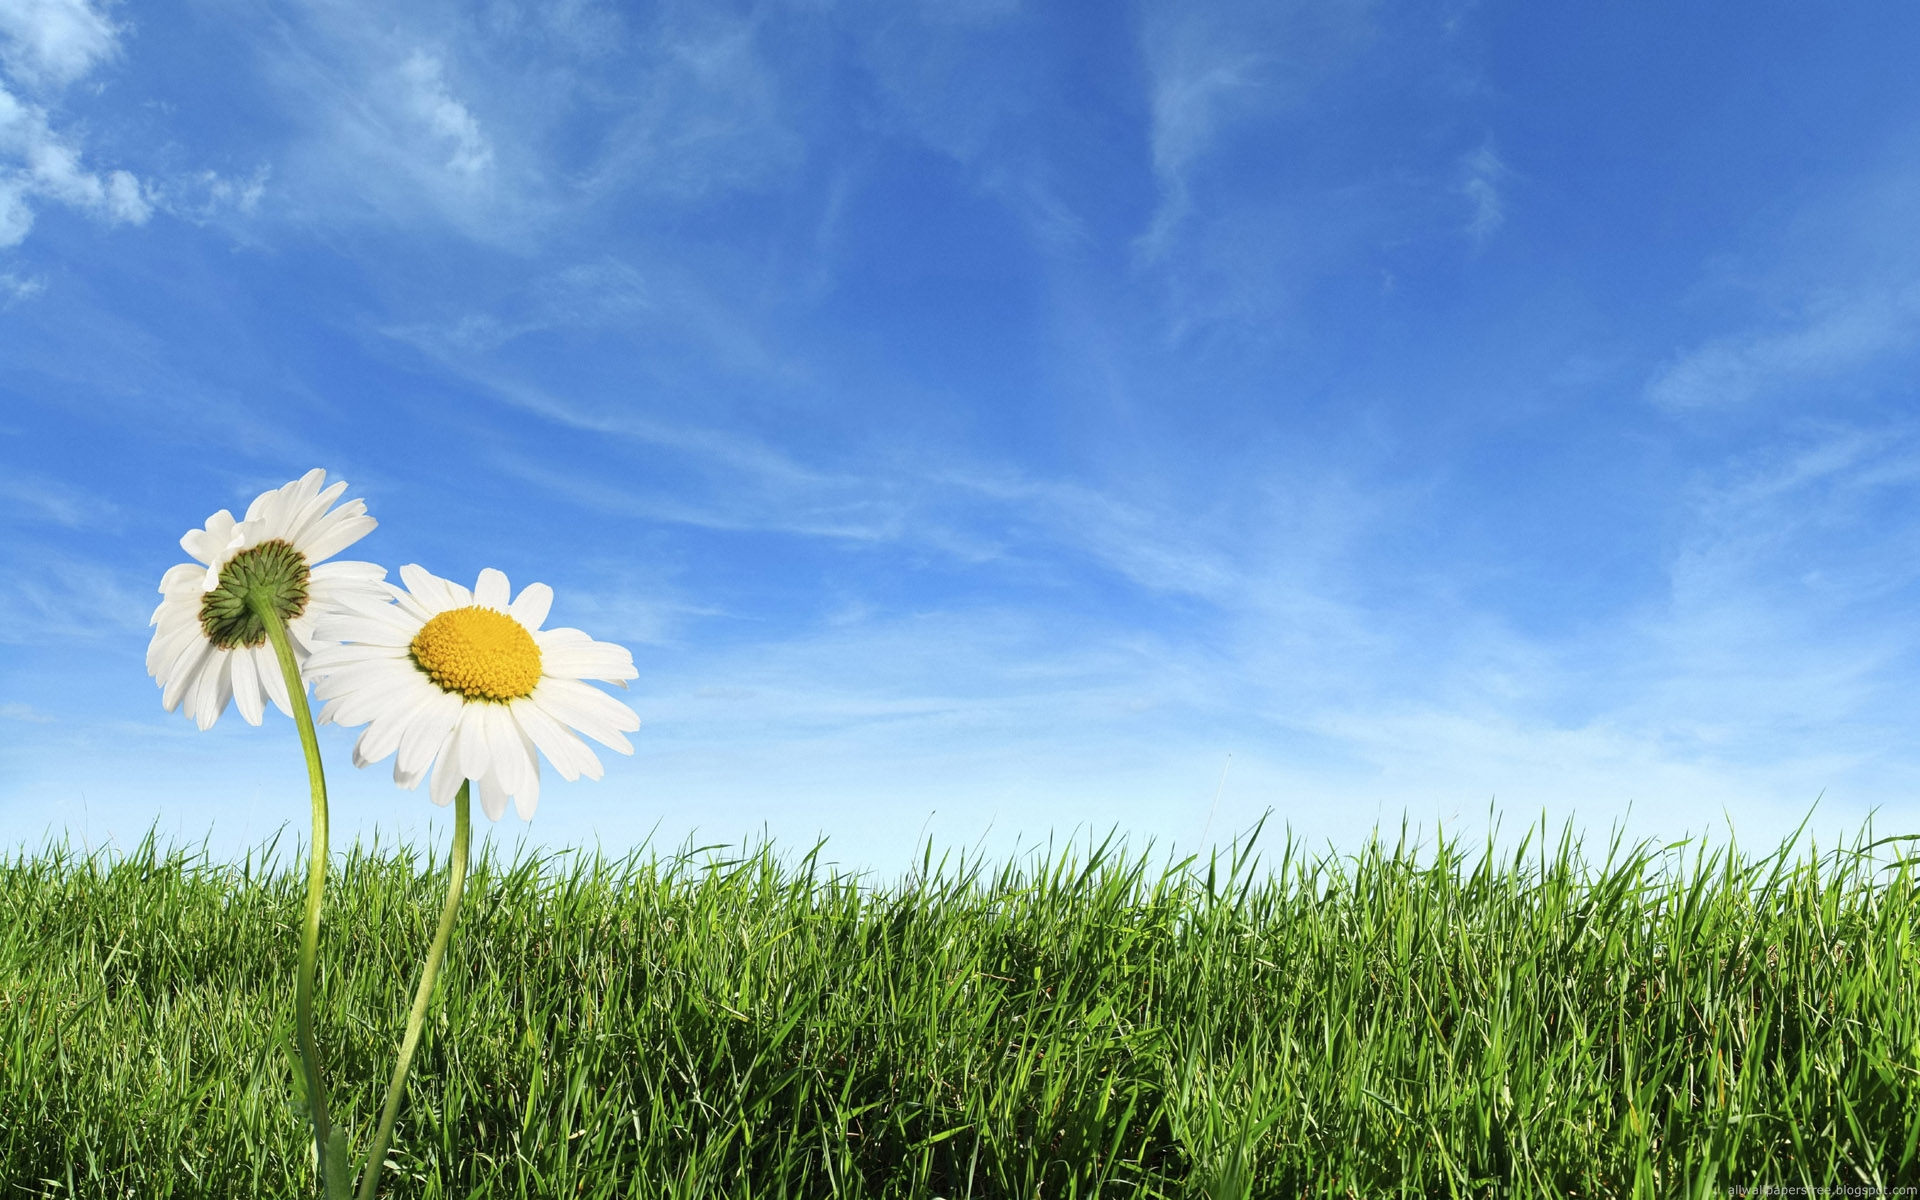 Spring Flowers Tulips Field Sunrise Grass Clouds: How To Not Get Frustrated When Projects Take Longer Than